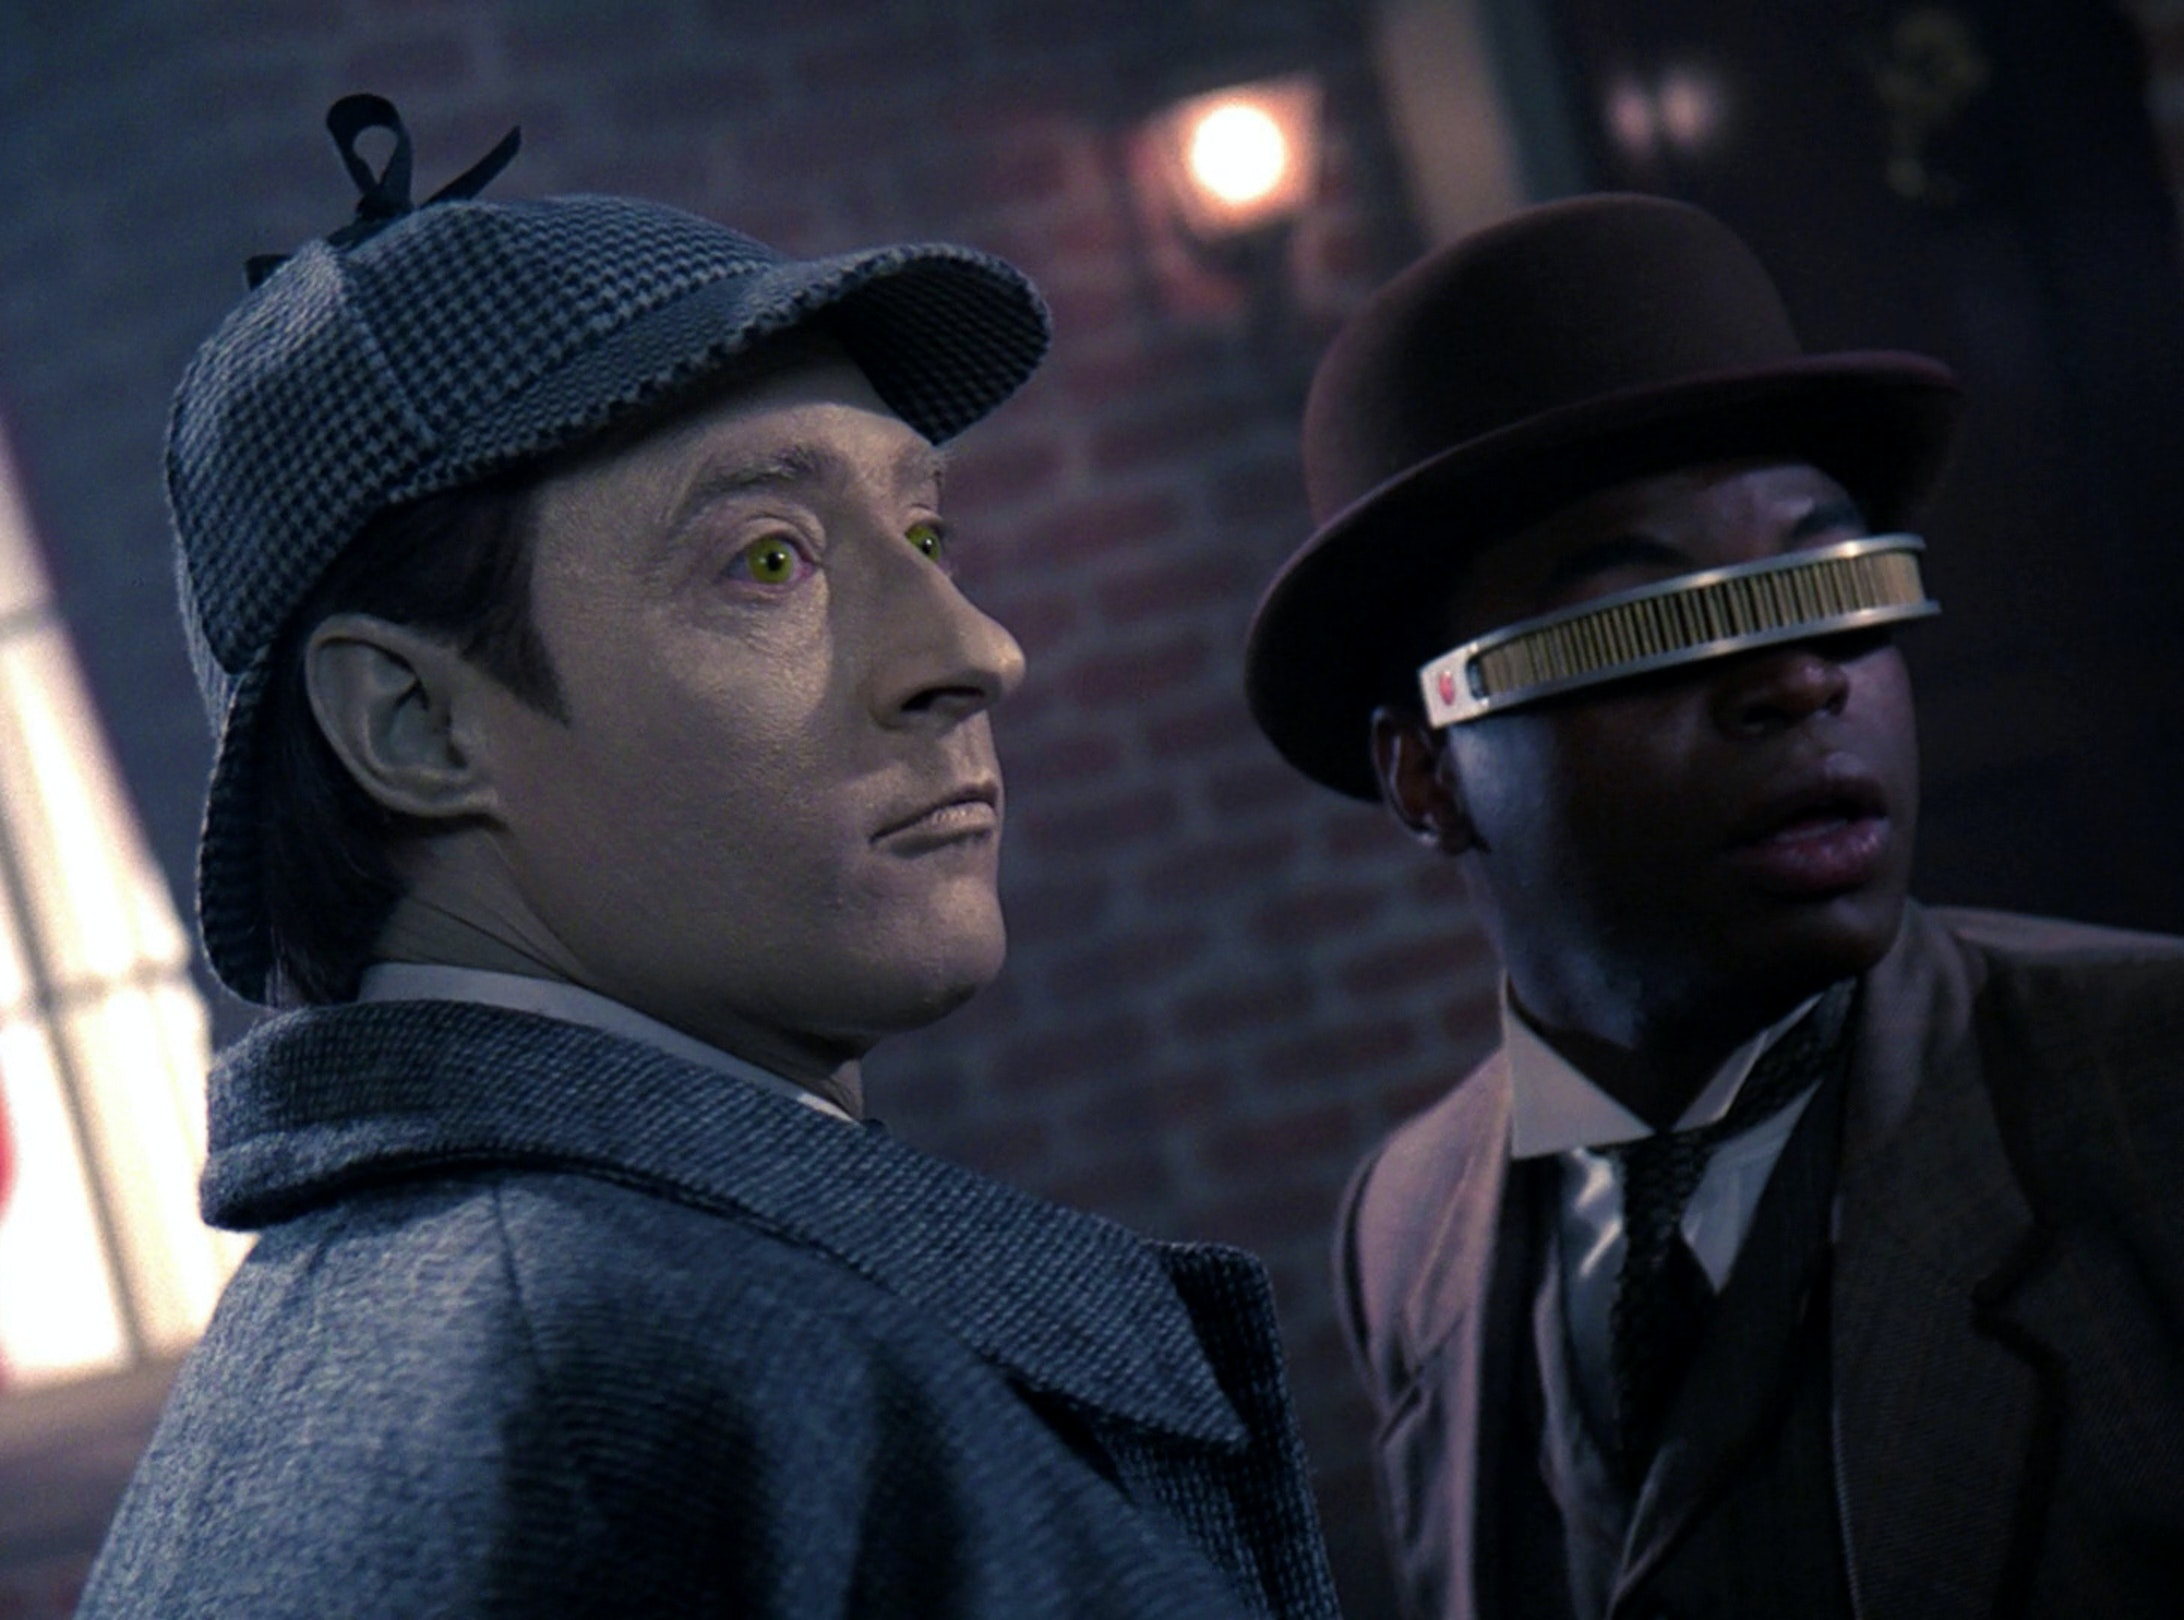 The android Mr. Data as Holmes and Geordi LaForge as Watson in 'Star Trek: The Next Generation""